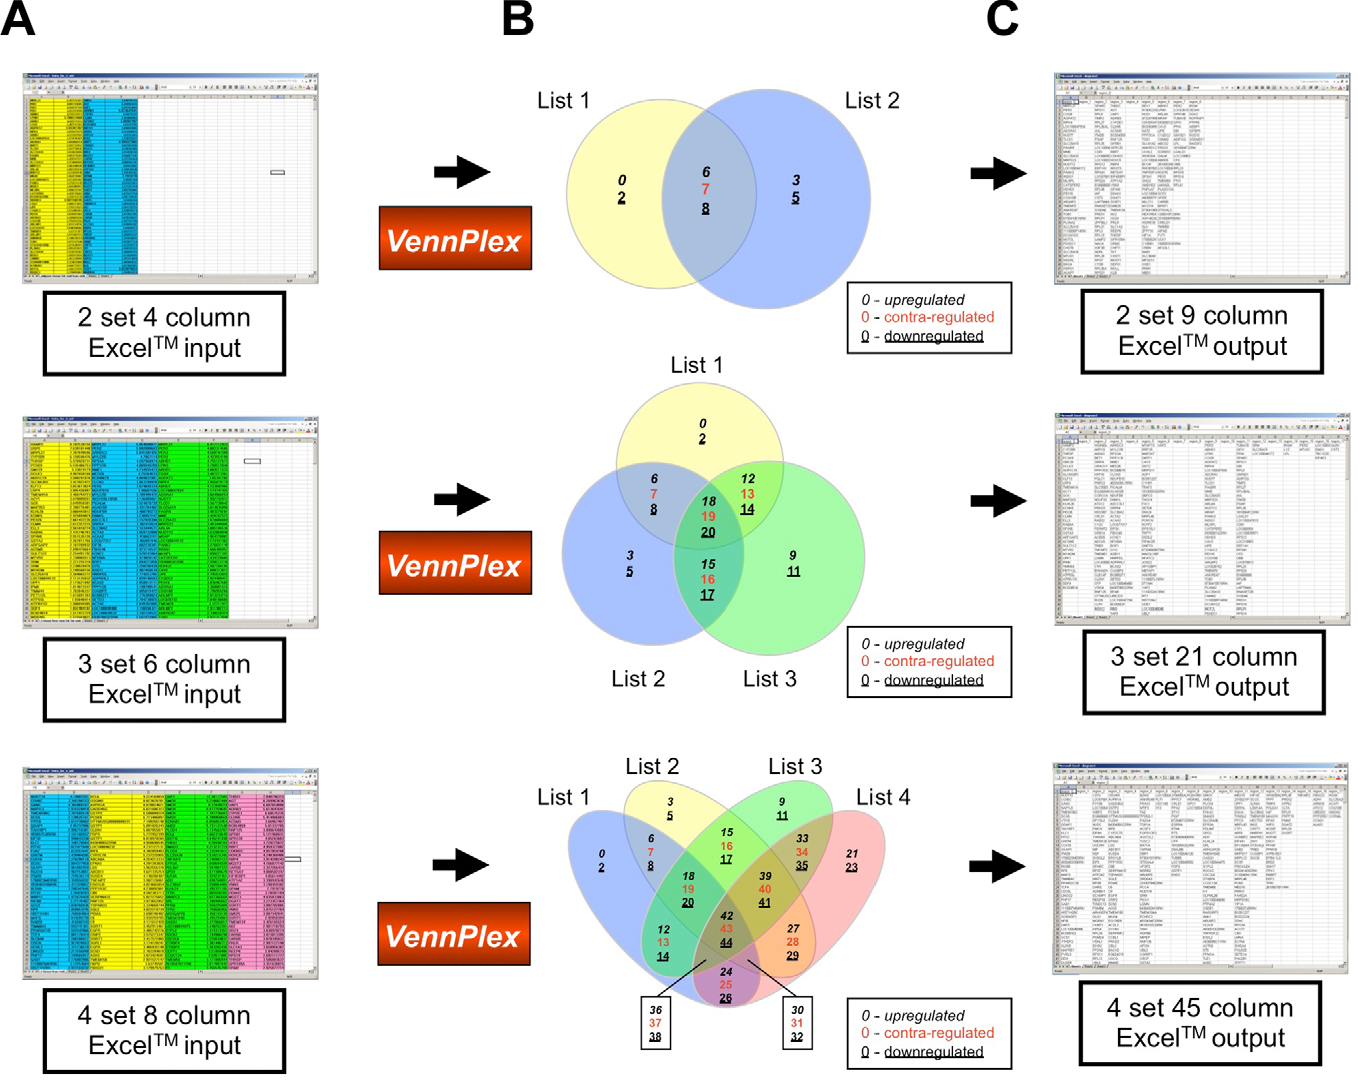 Figure 1 From Vennplex A Novel Venn Diagram Program For Comparing And Visualizing Datasets With Differentially Regulated Datapoints Semantic Scholar